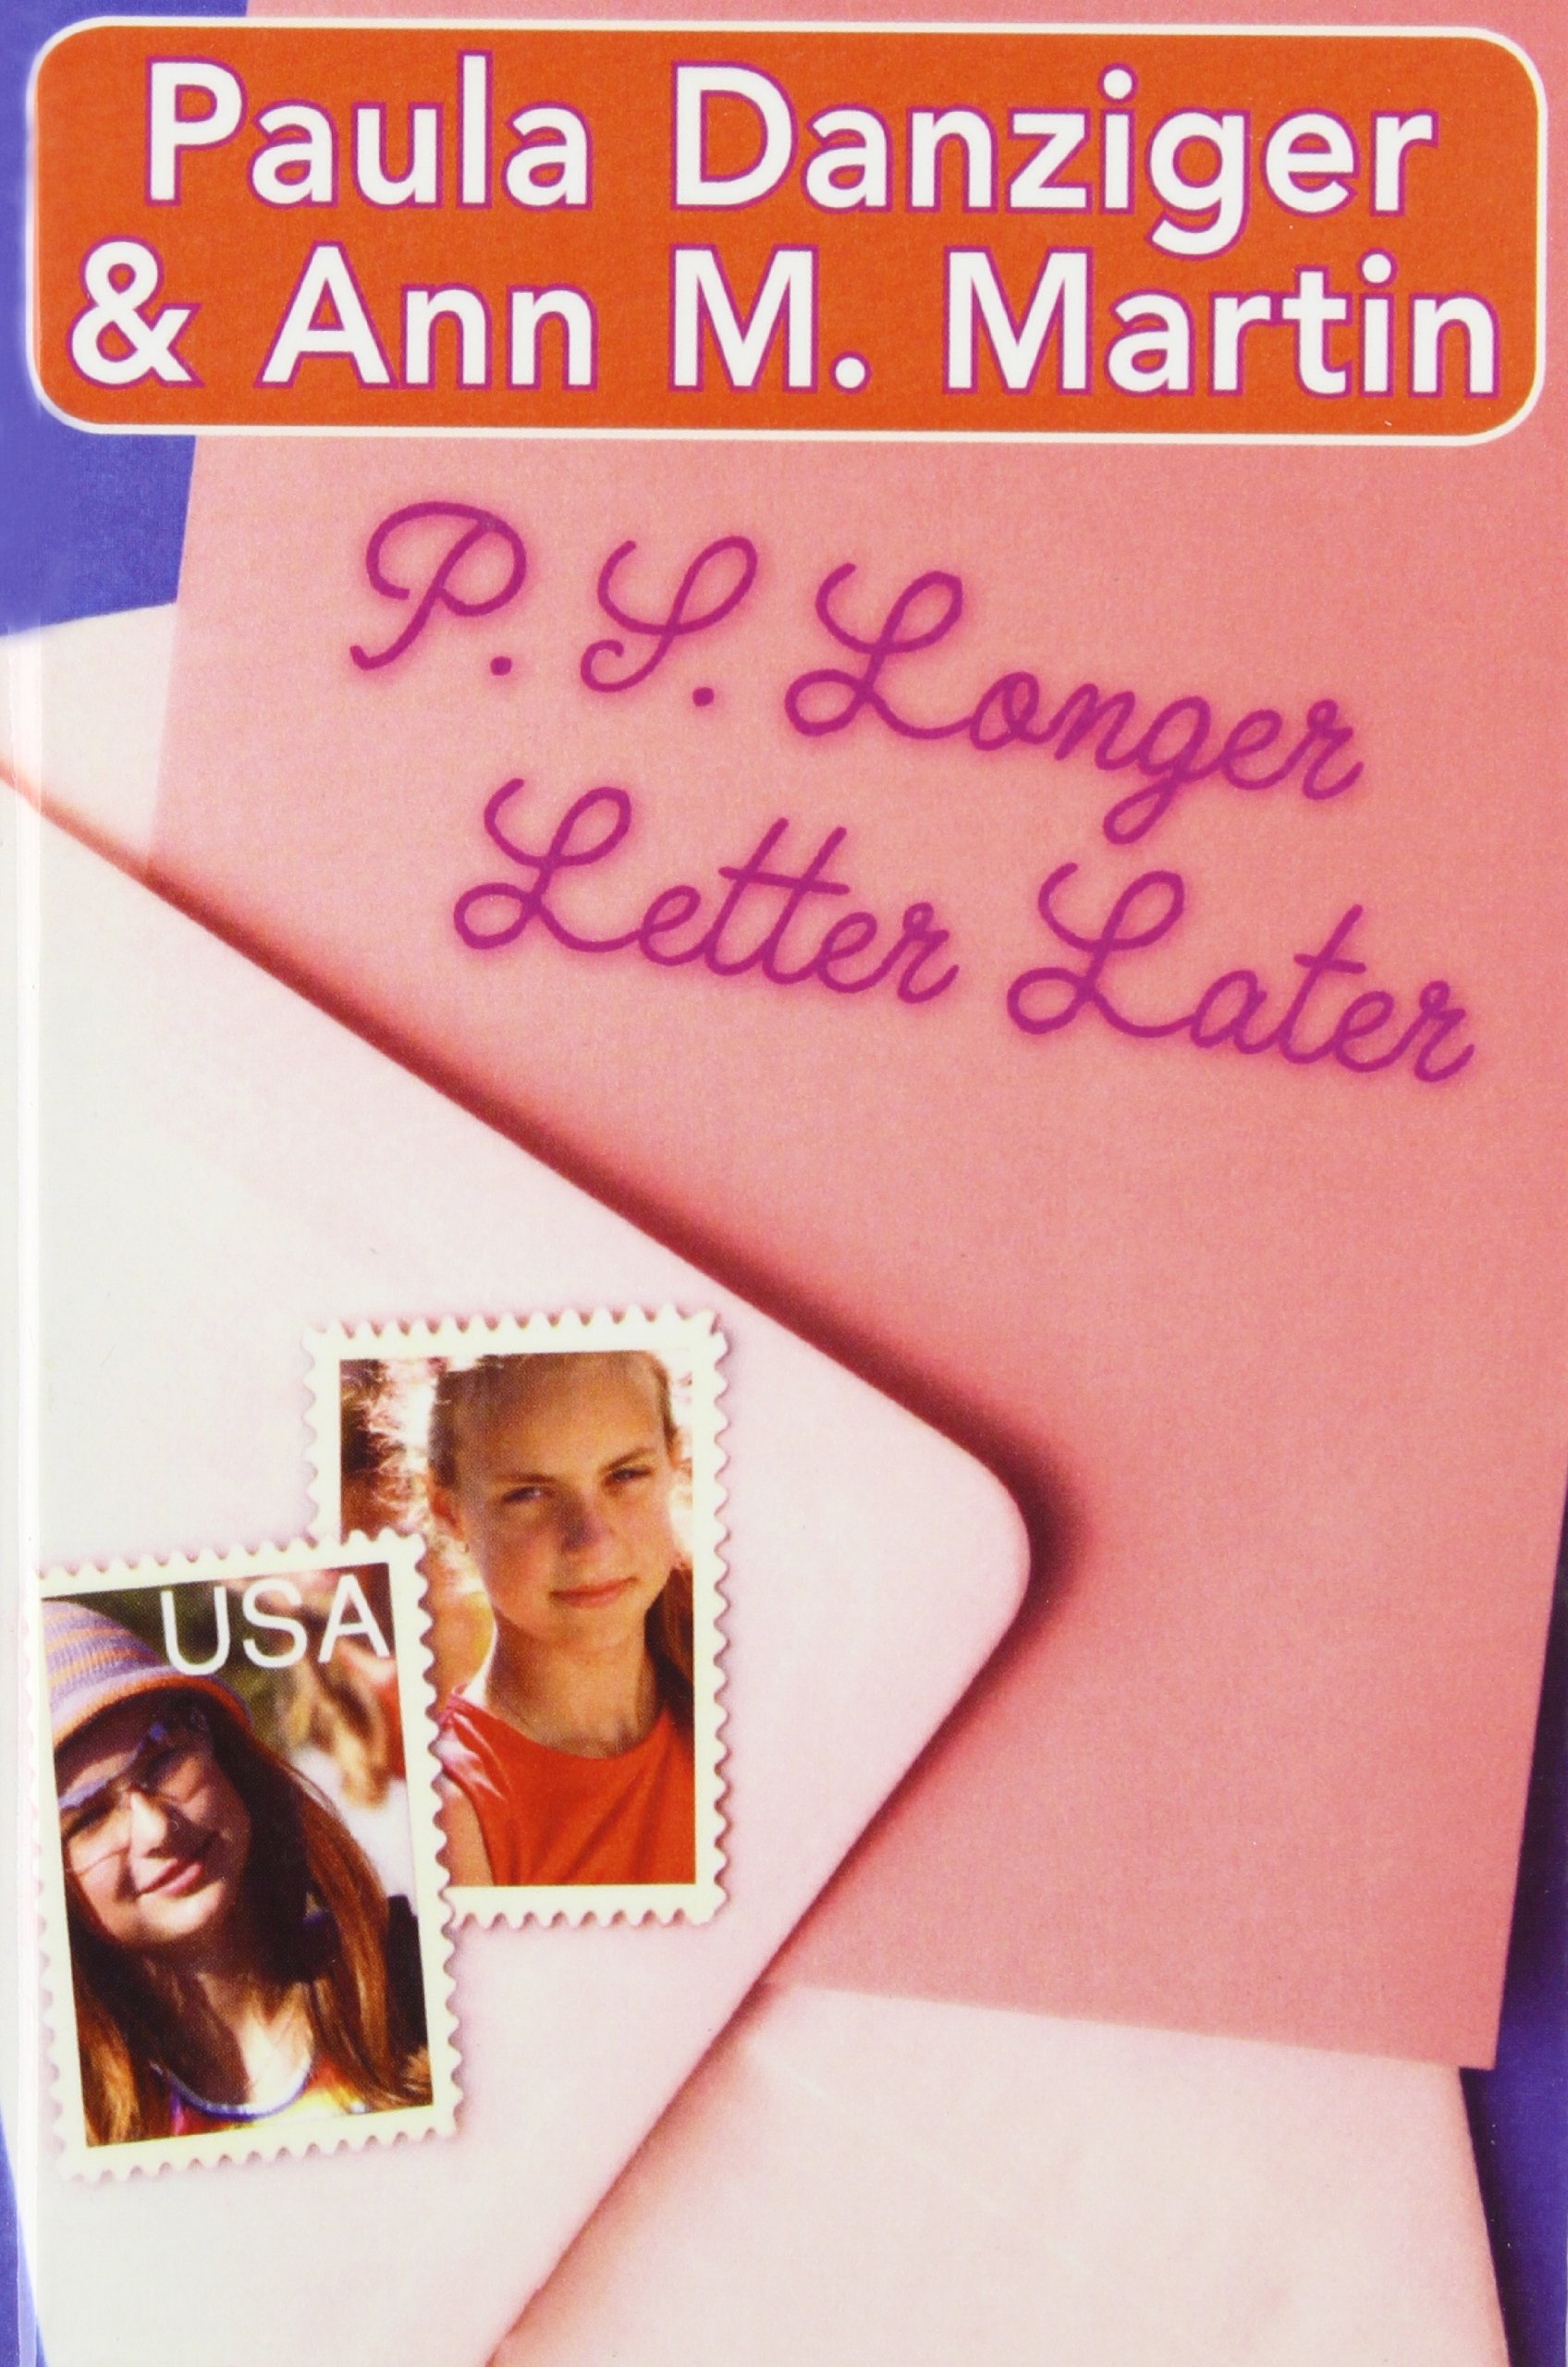 P.s. Longer Letter Later: Paula Danziger, Ann M. Martin